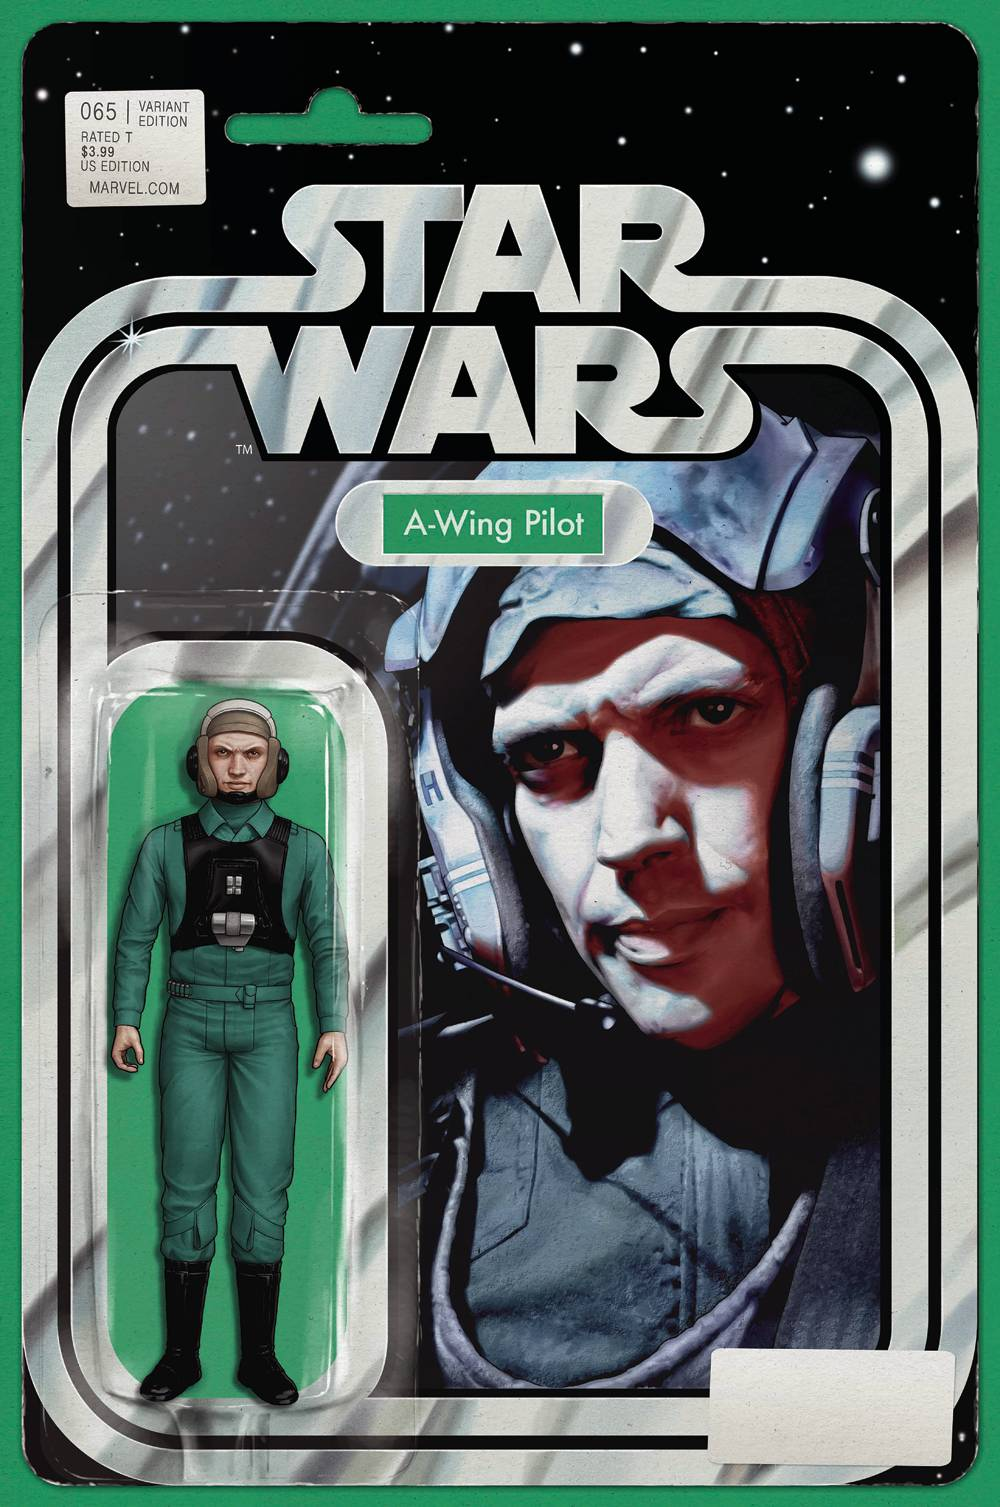 STAR WARS 65 CHRISTOPHER ACTION FIGURE VAR.jpg